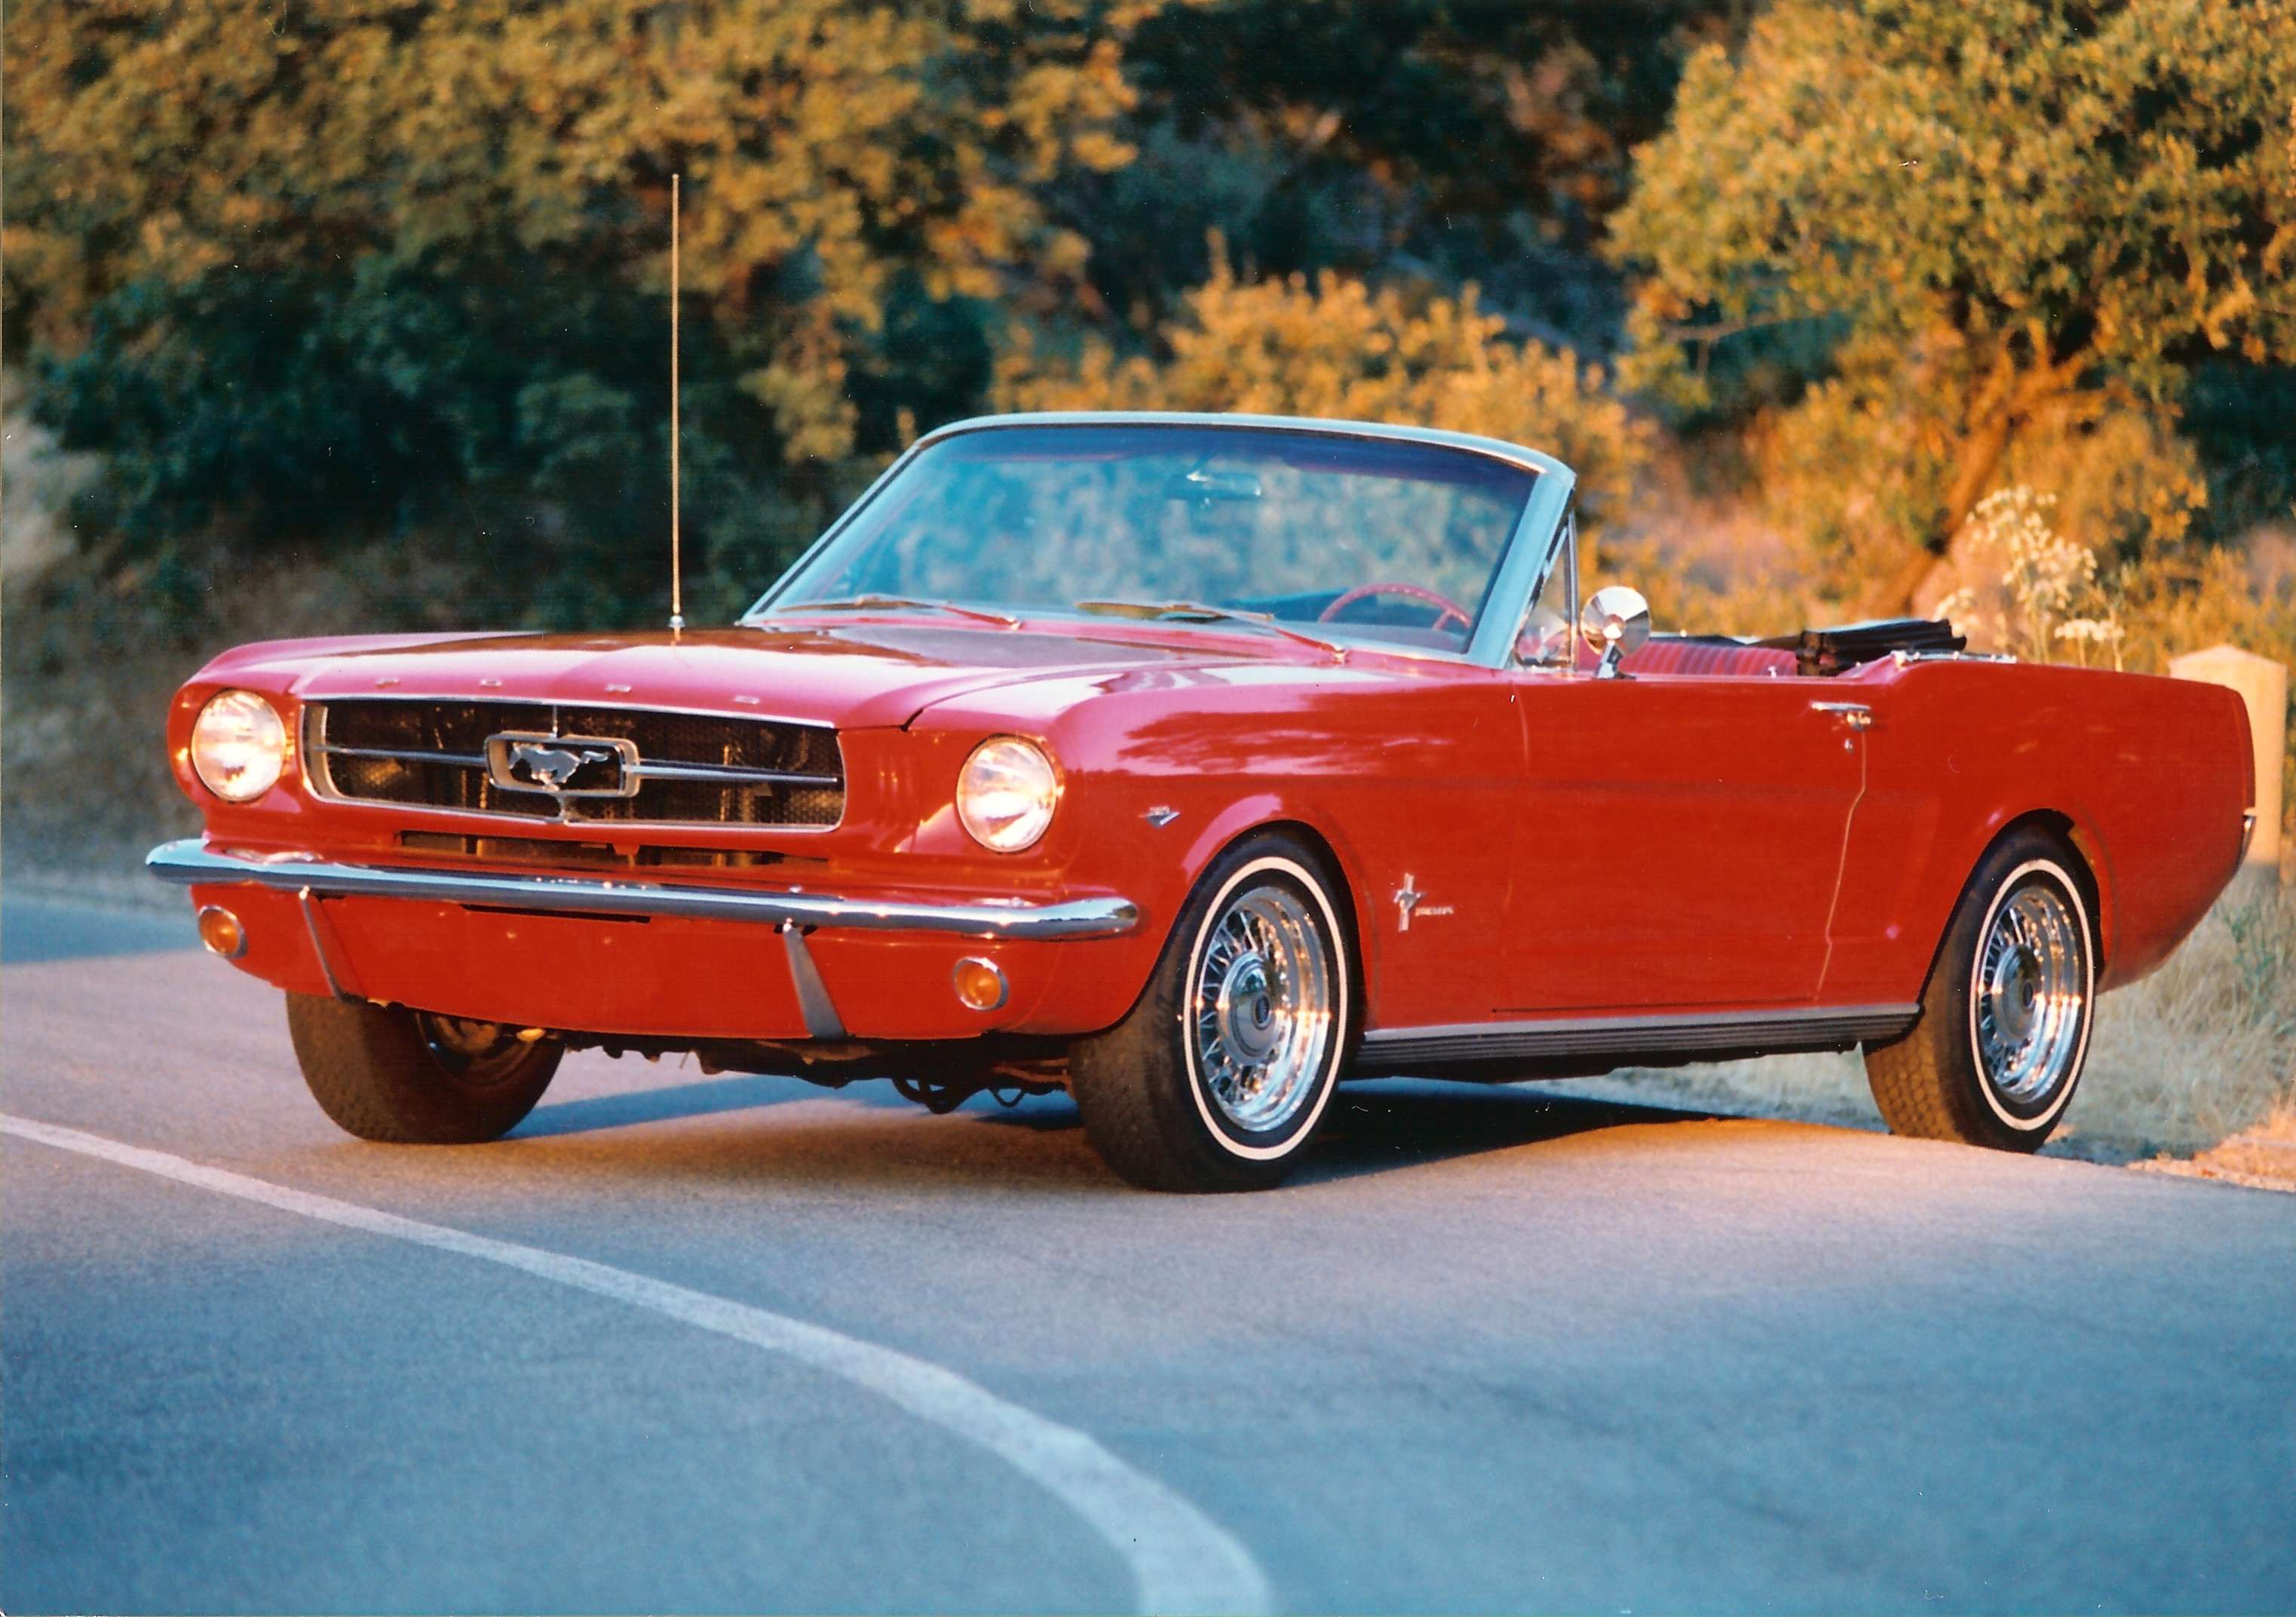 Ford Mustang Cabrio #8631009